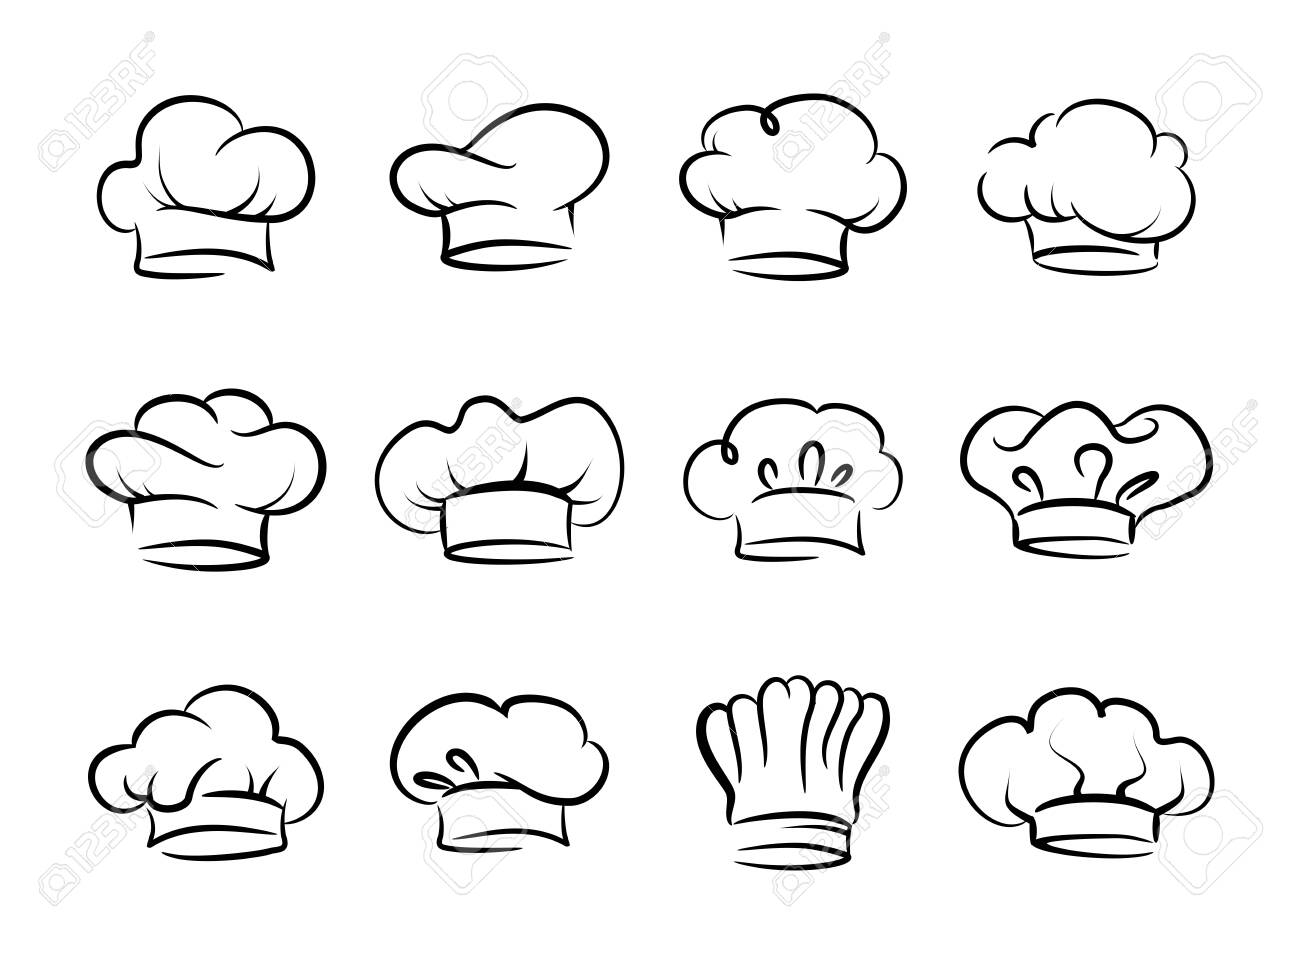 Chefs hat vector set, collection - 139552386